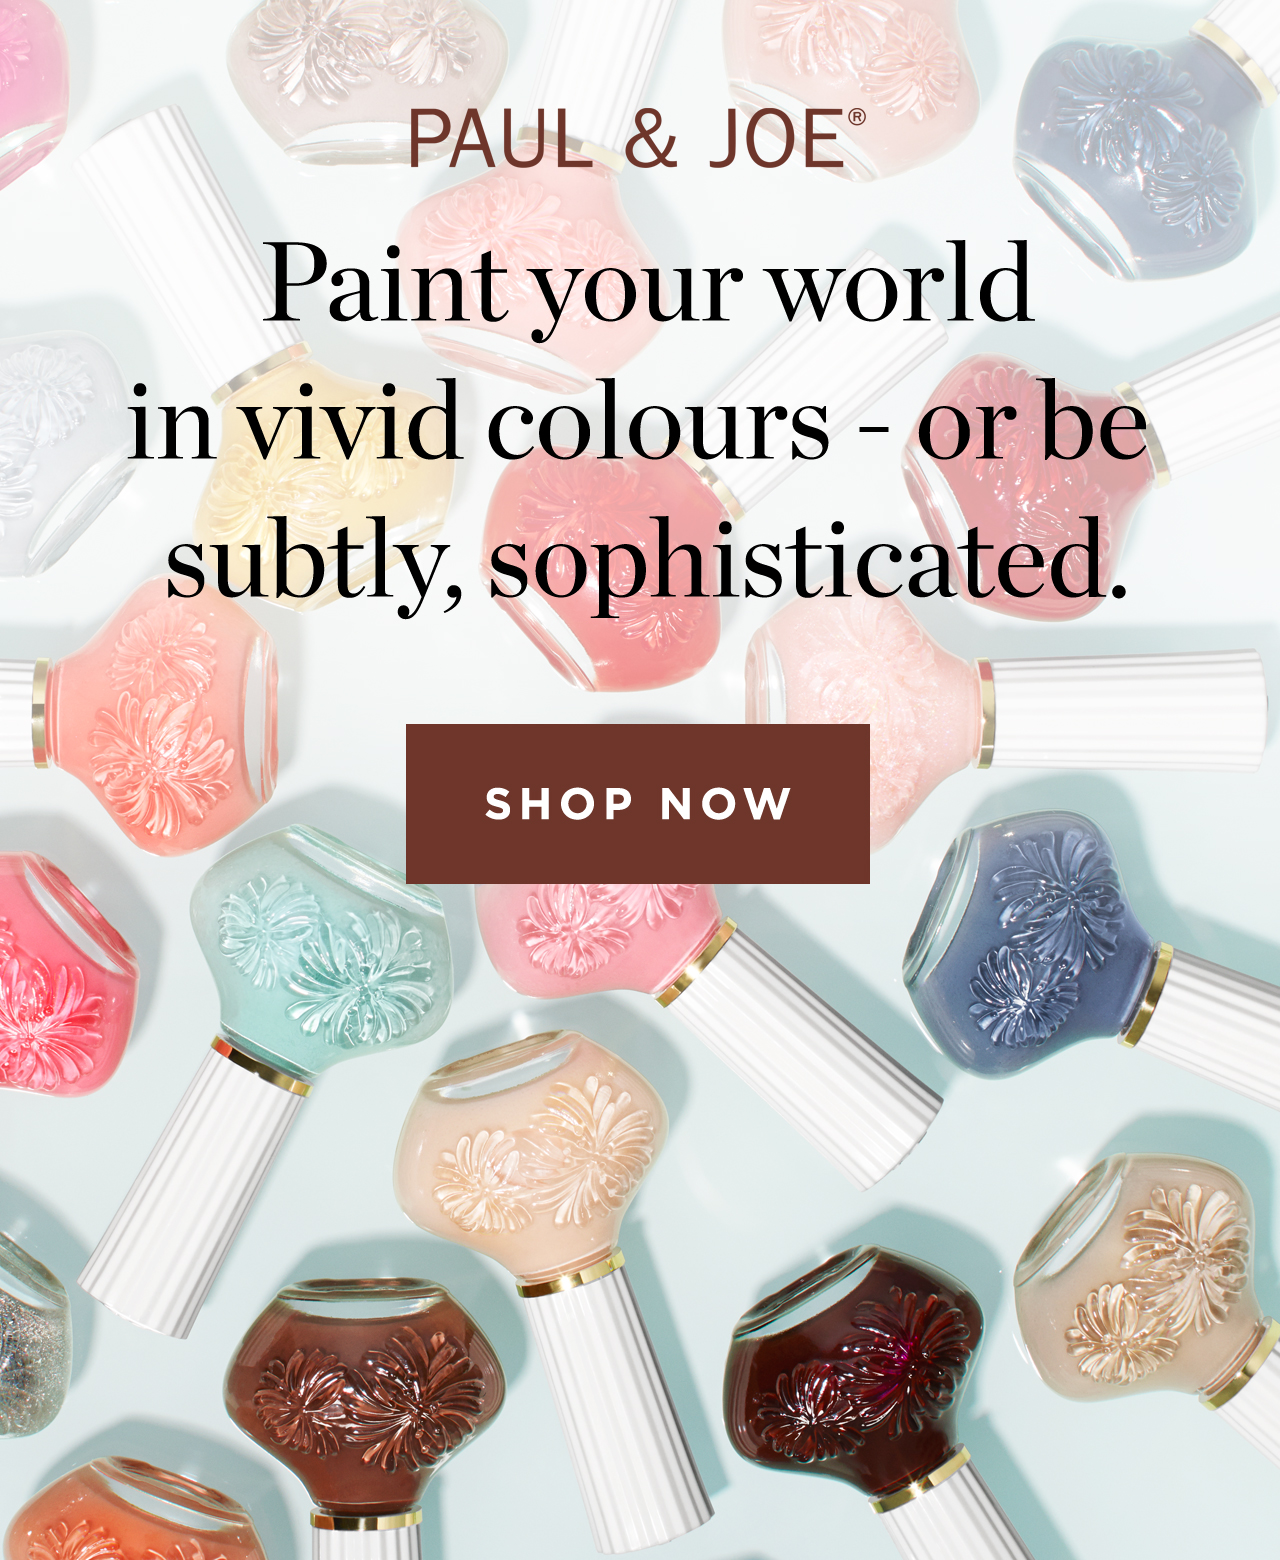 Paint your world in vivid colours - or be subtly, sophisticated